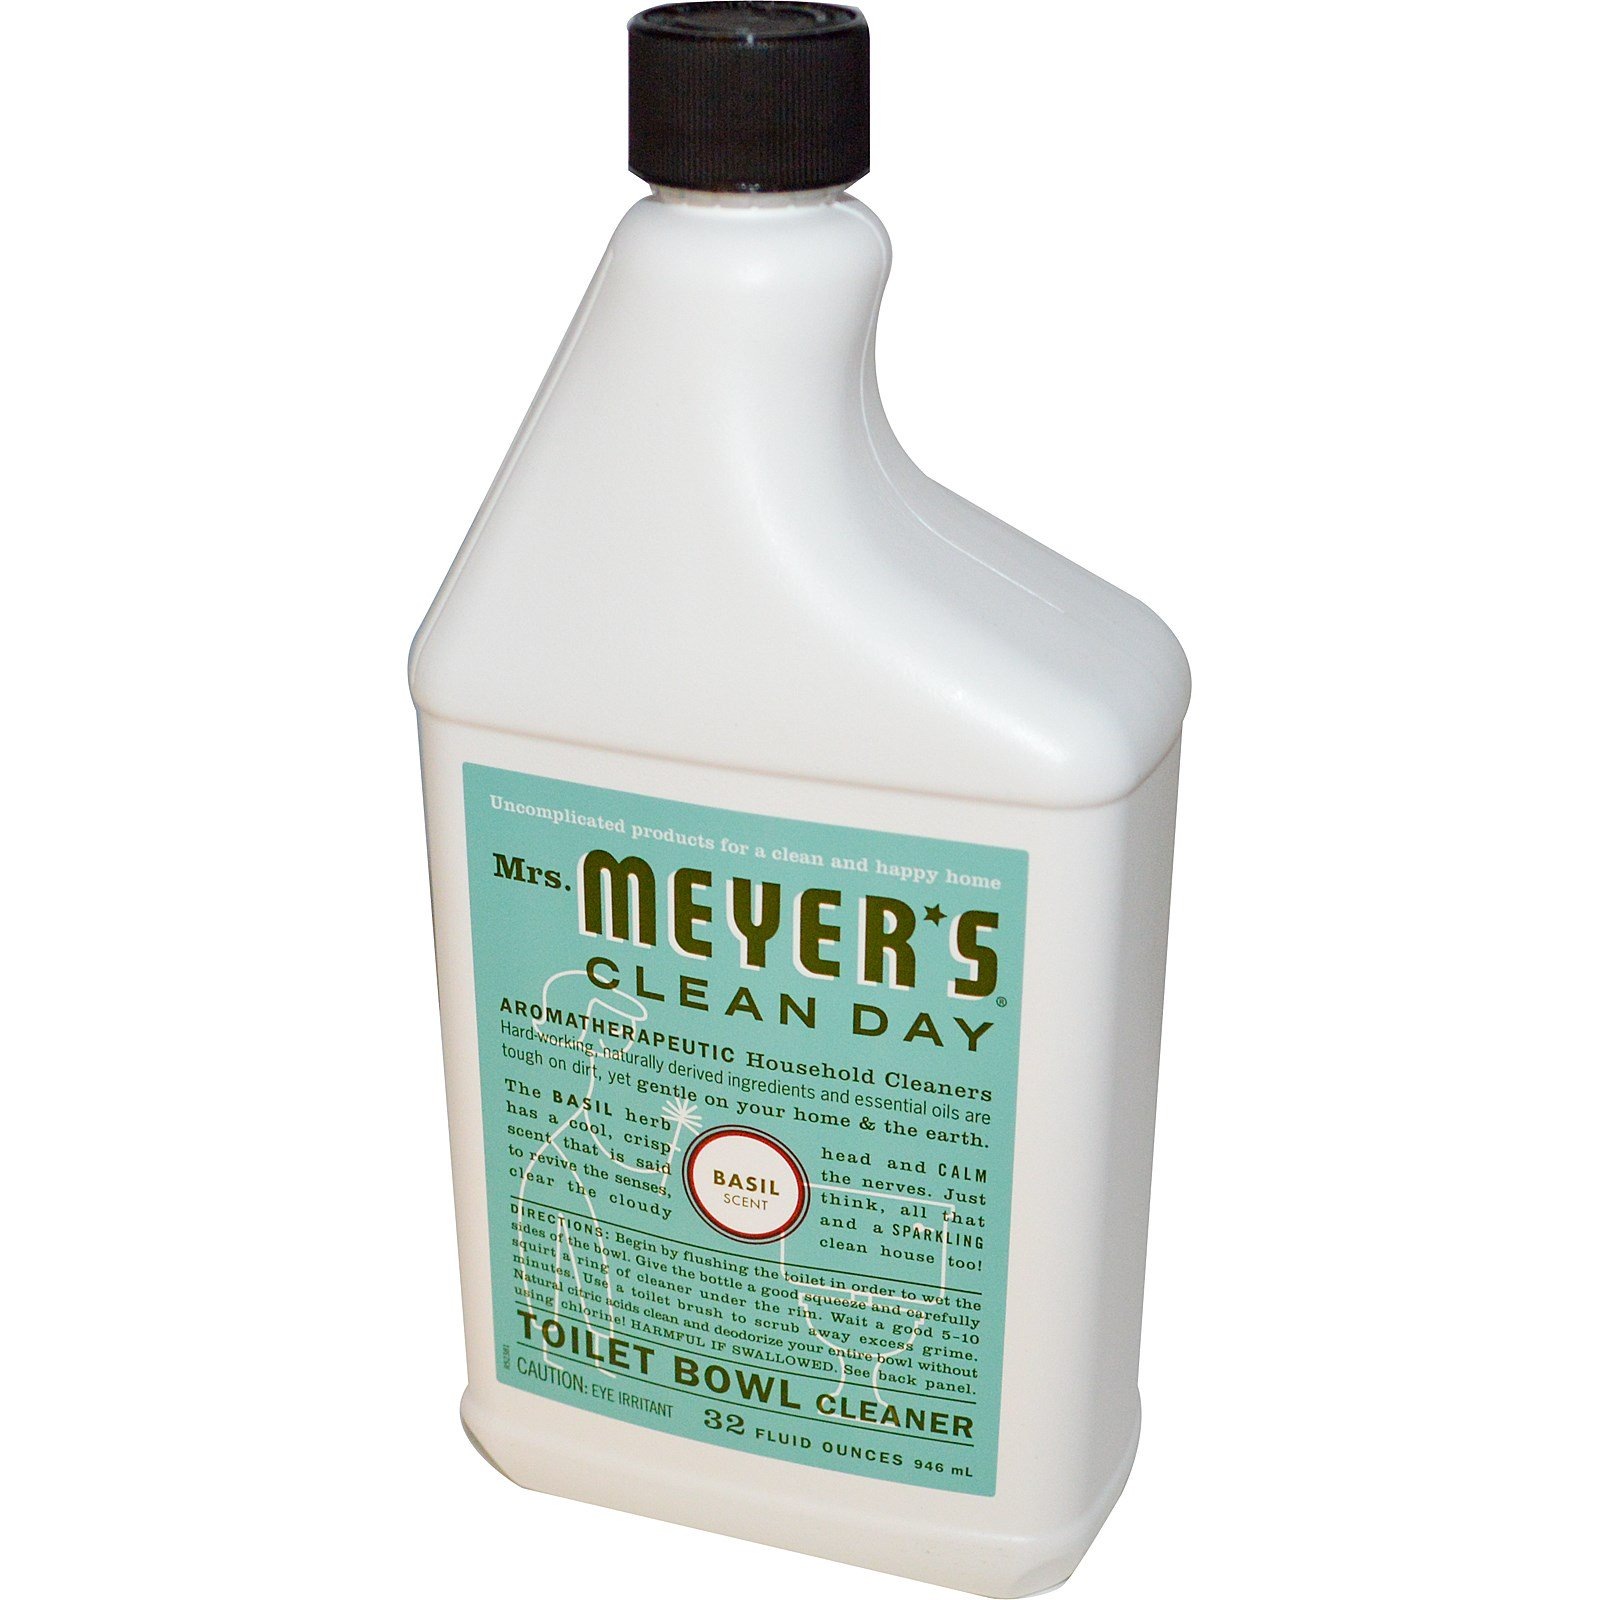 Mrs Meyers Clean Day Toilet Bowl Cleaner Basil Scent